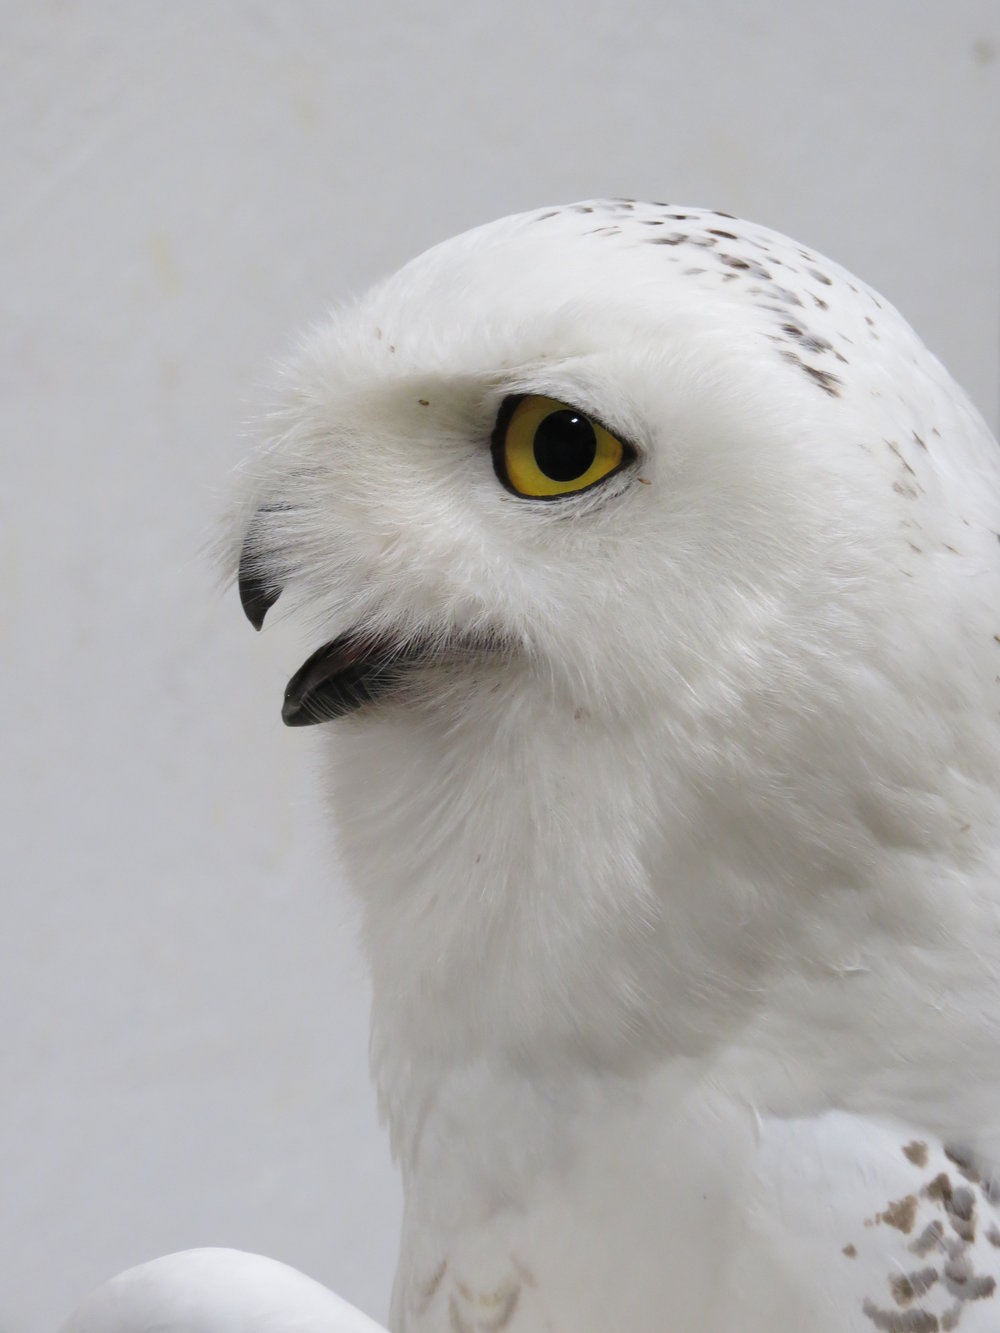 Coddington, the snowy owl outfitted with Arlington's transmitter, in profile. Photo by Brad ZInda.